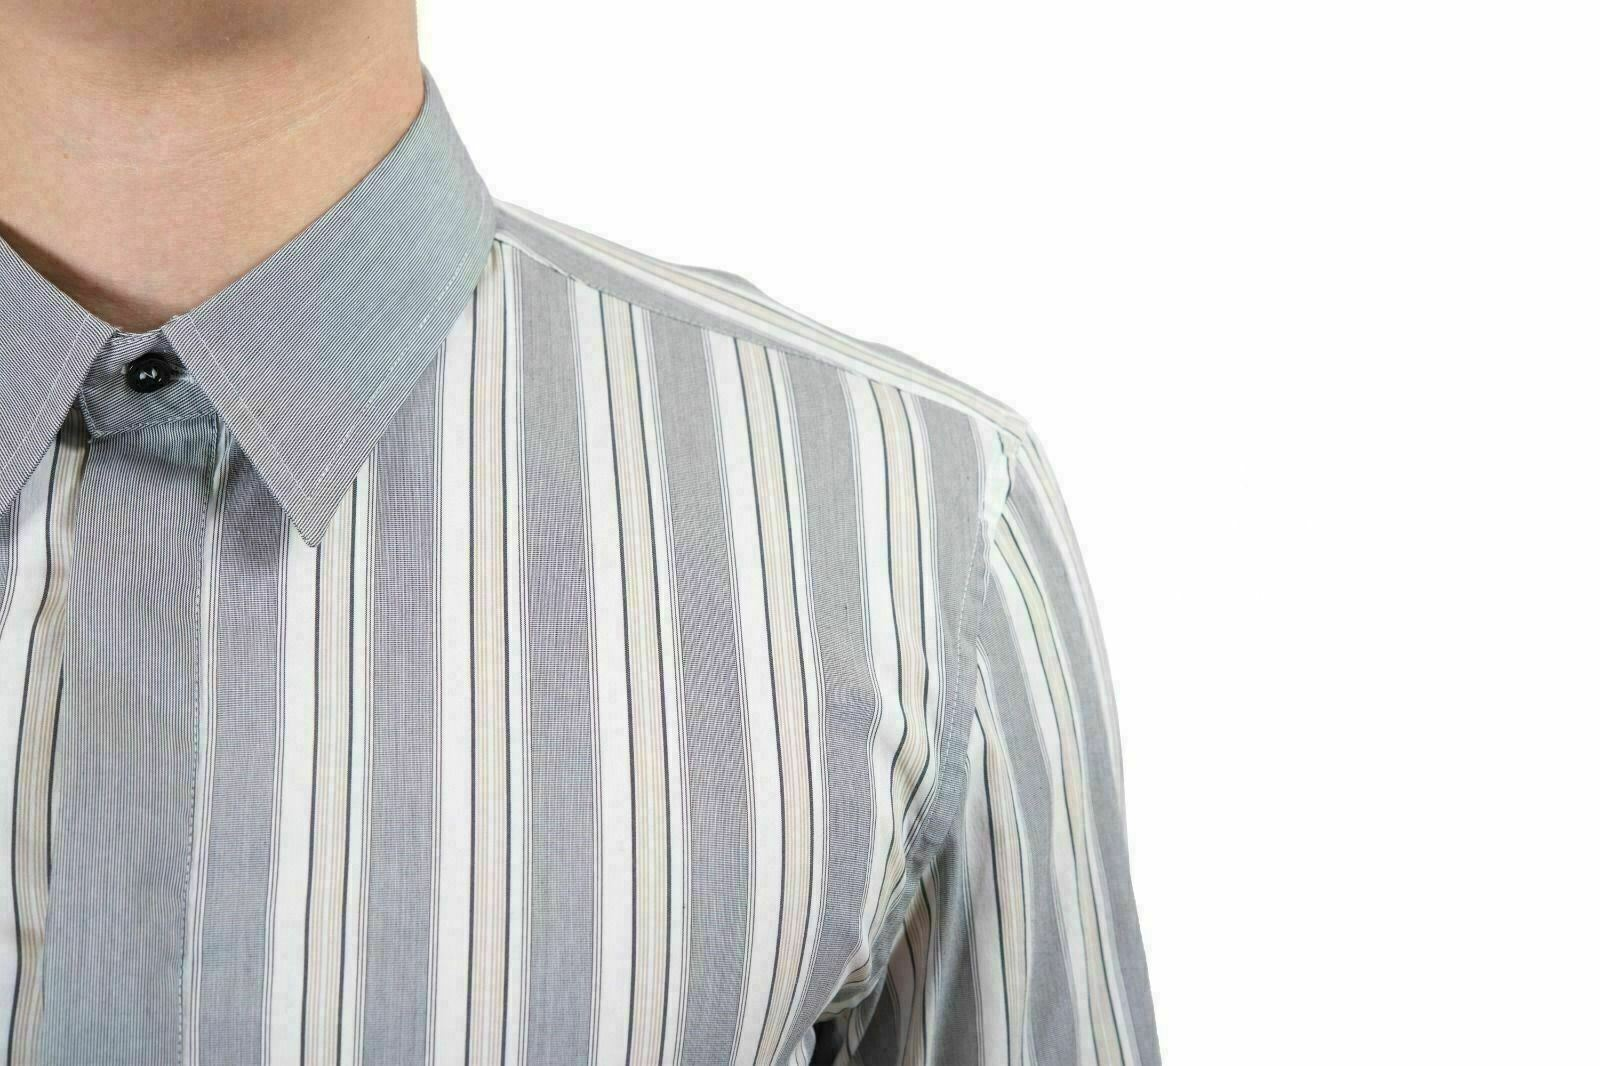 Richmond x   Multicolore a a a Righe Pulsante Anteriore Uomo CAMICIA USA S It 48 67a59e